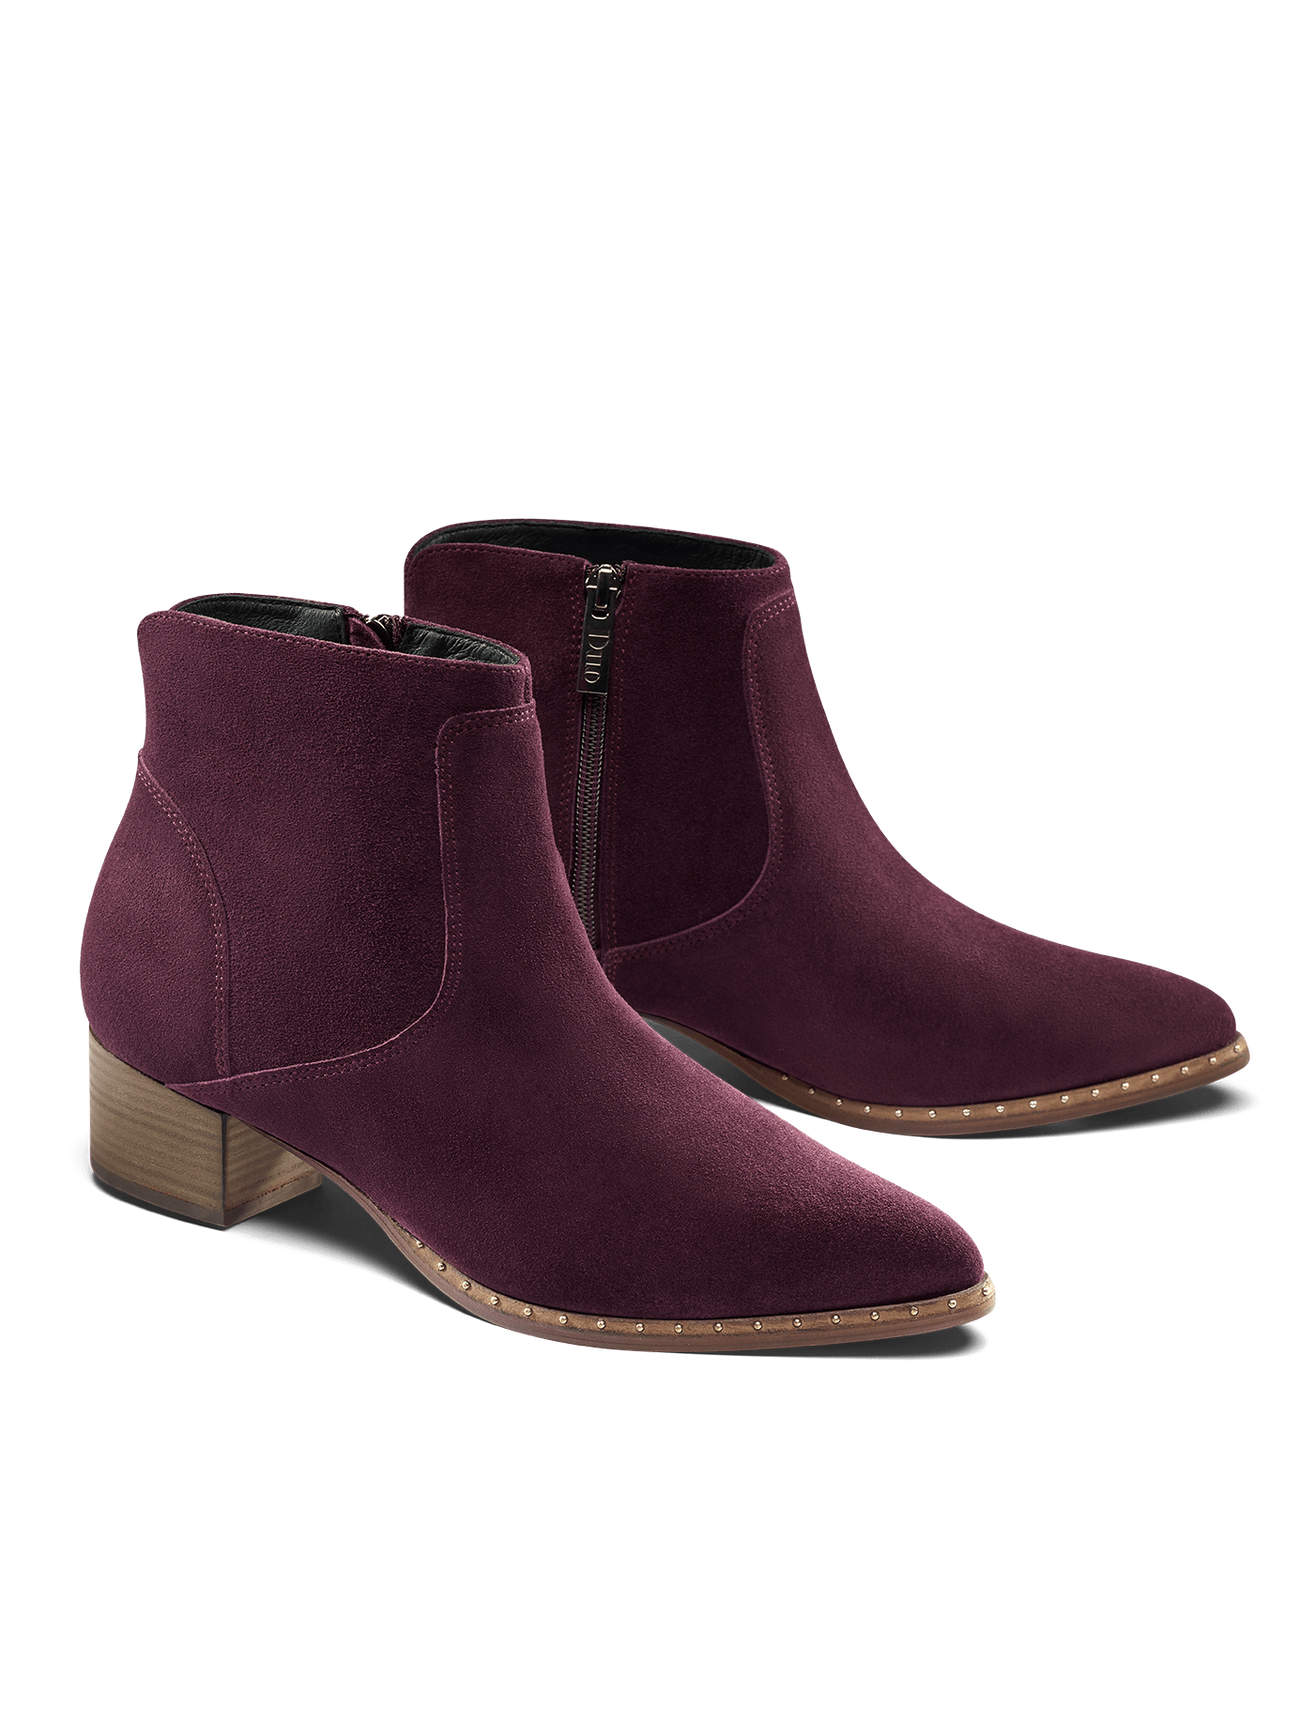 Ludlow, a purple suede ankle boot with stud detail is perfect for everyday wear.